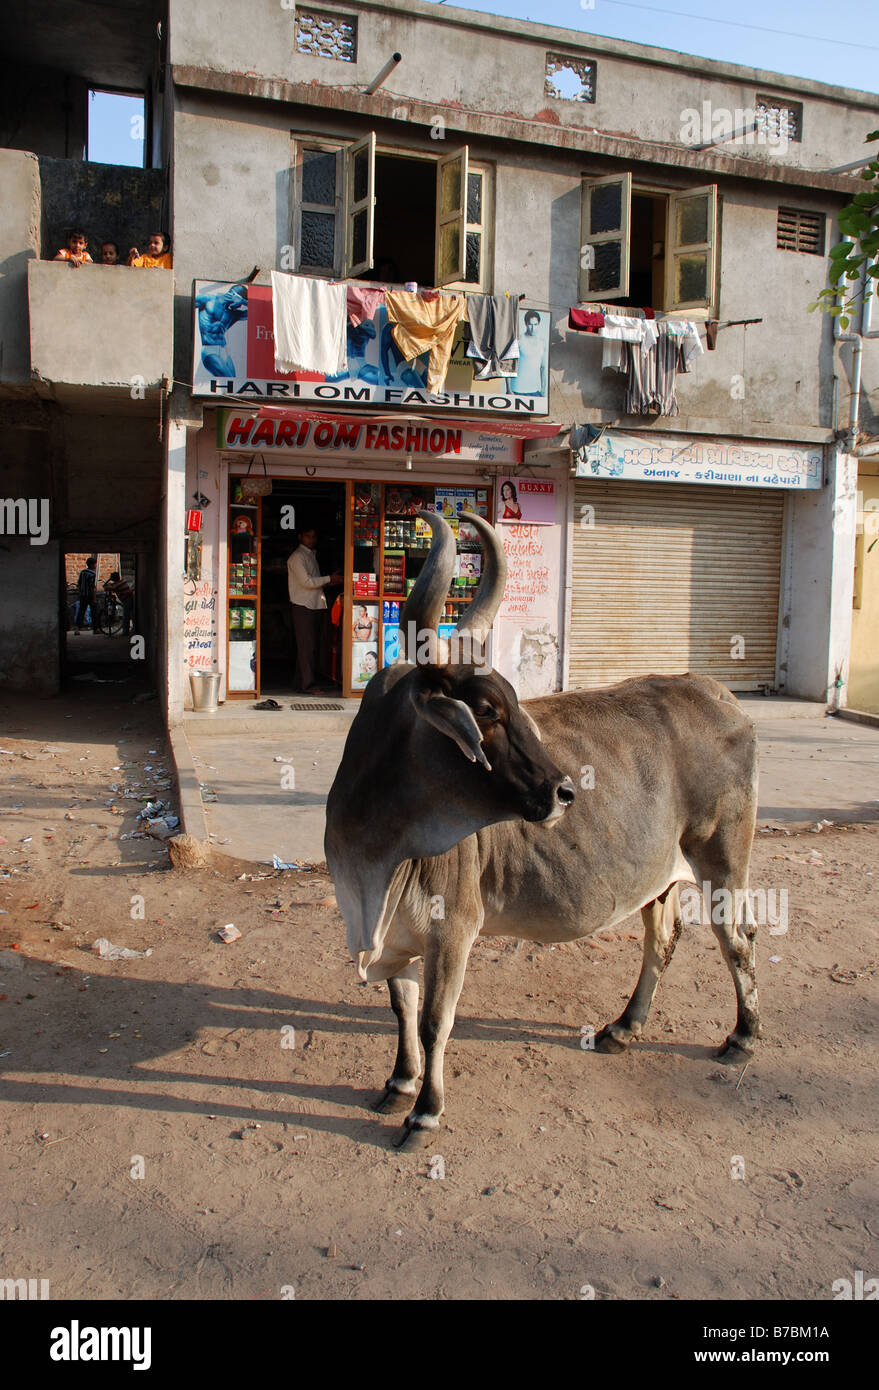 Close-up of cow in Ahmedabad, India. - Stock Image